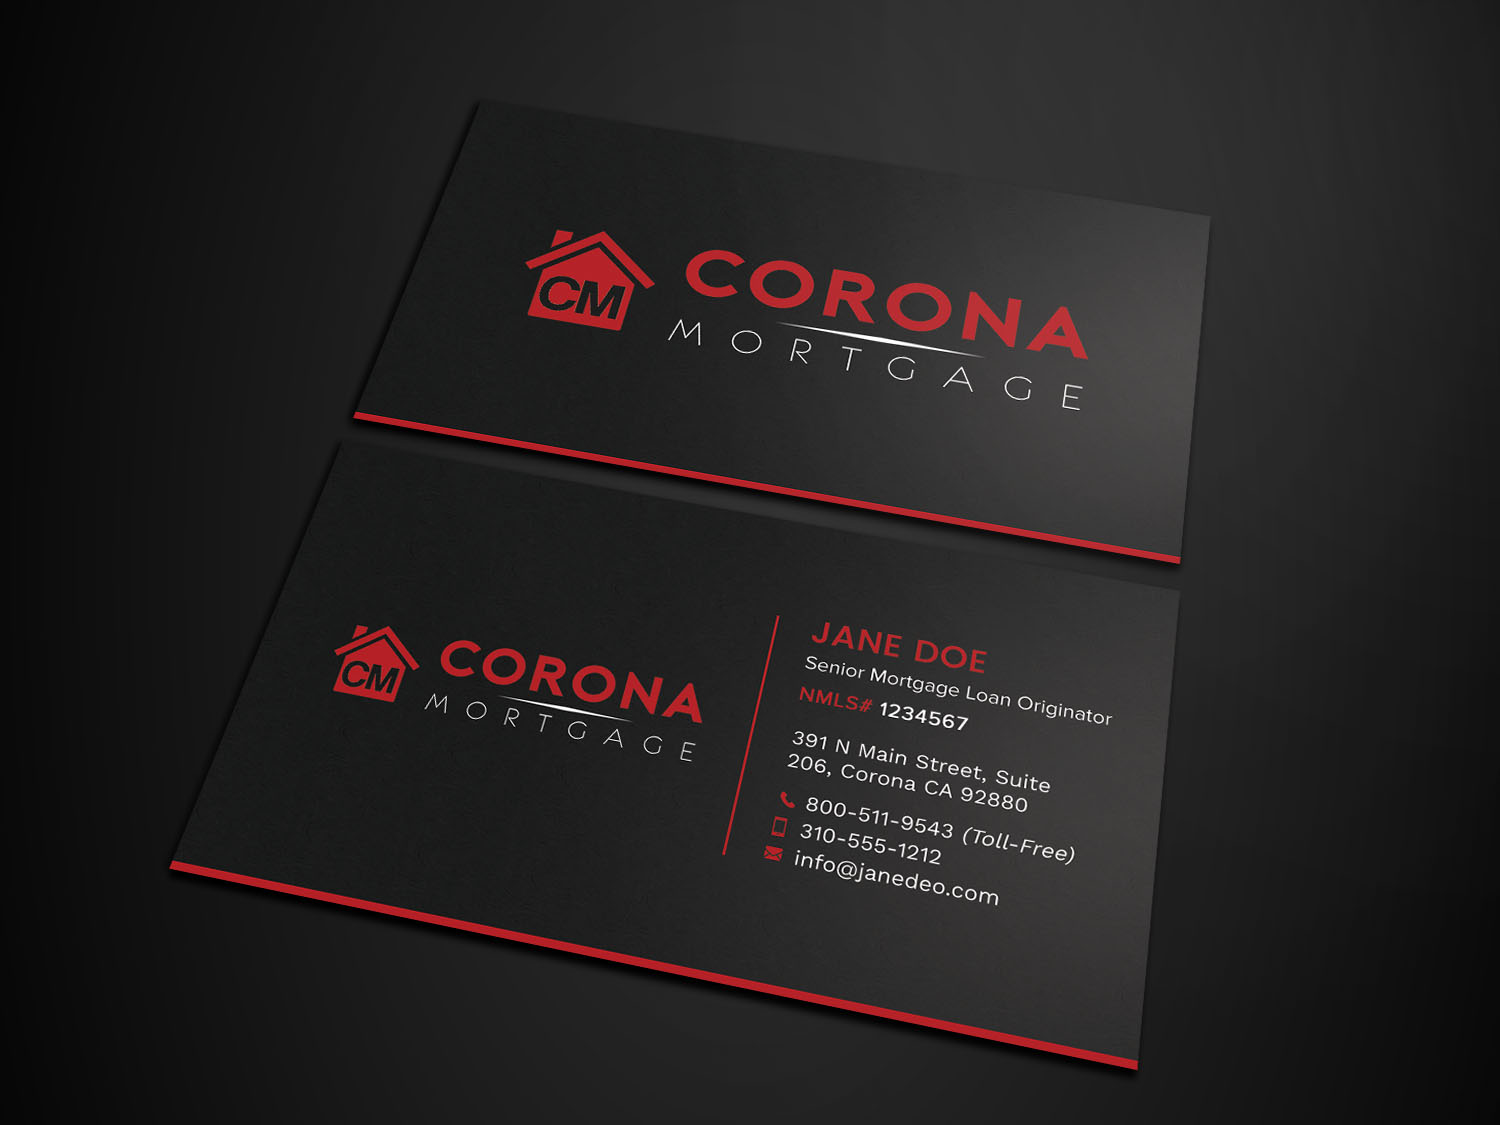 Modern upmarket mortgage lender business card design for a company business card design by avanger000 for this project design 17319972 reheart Choice Image